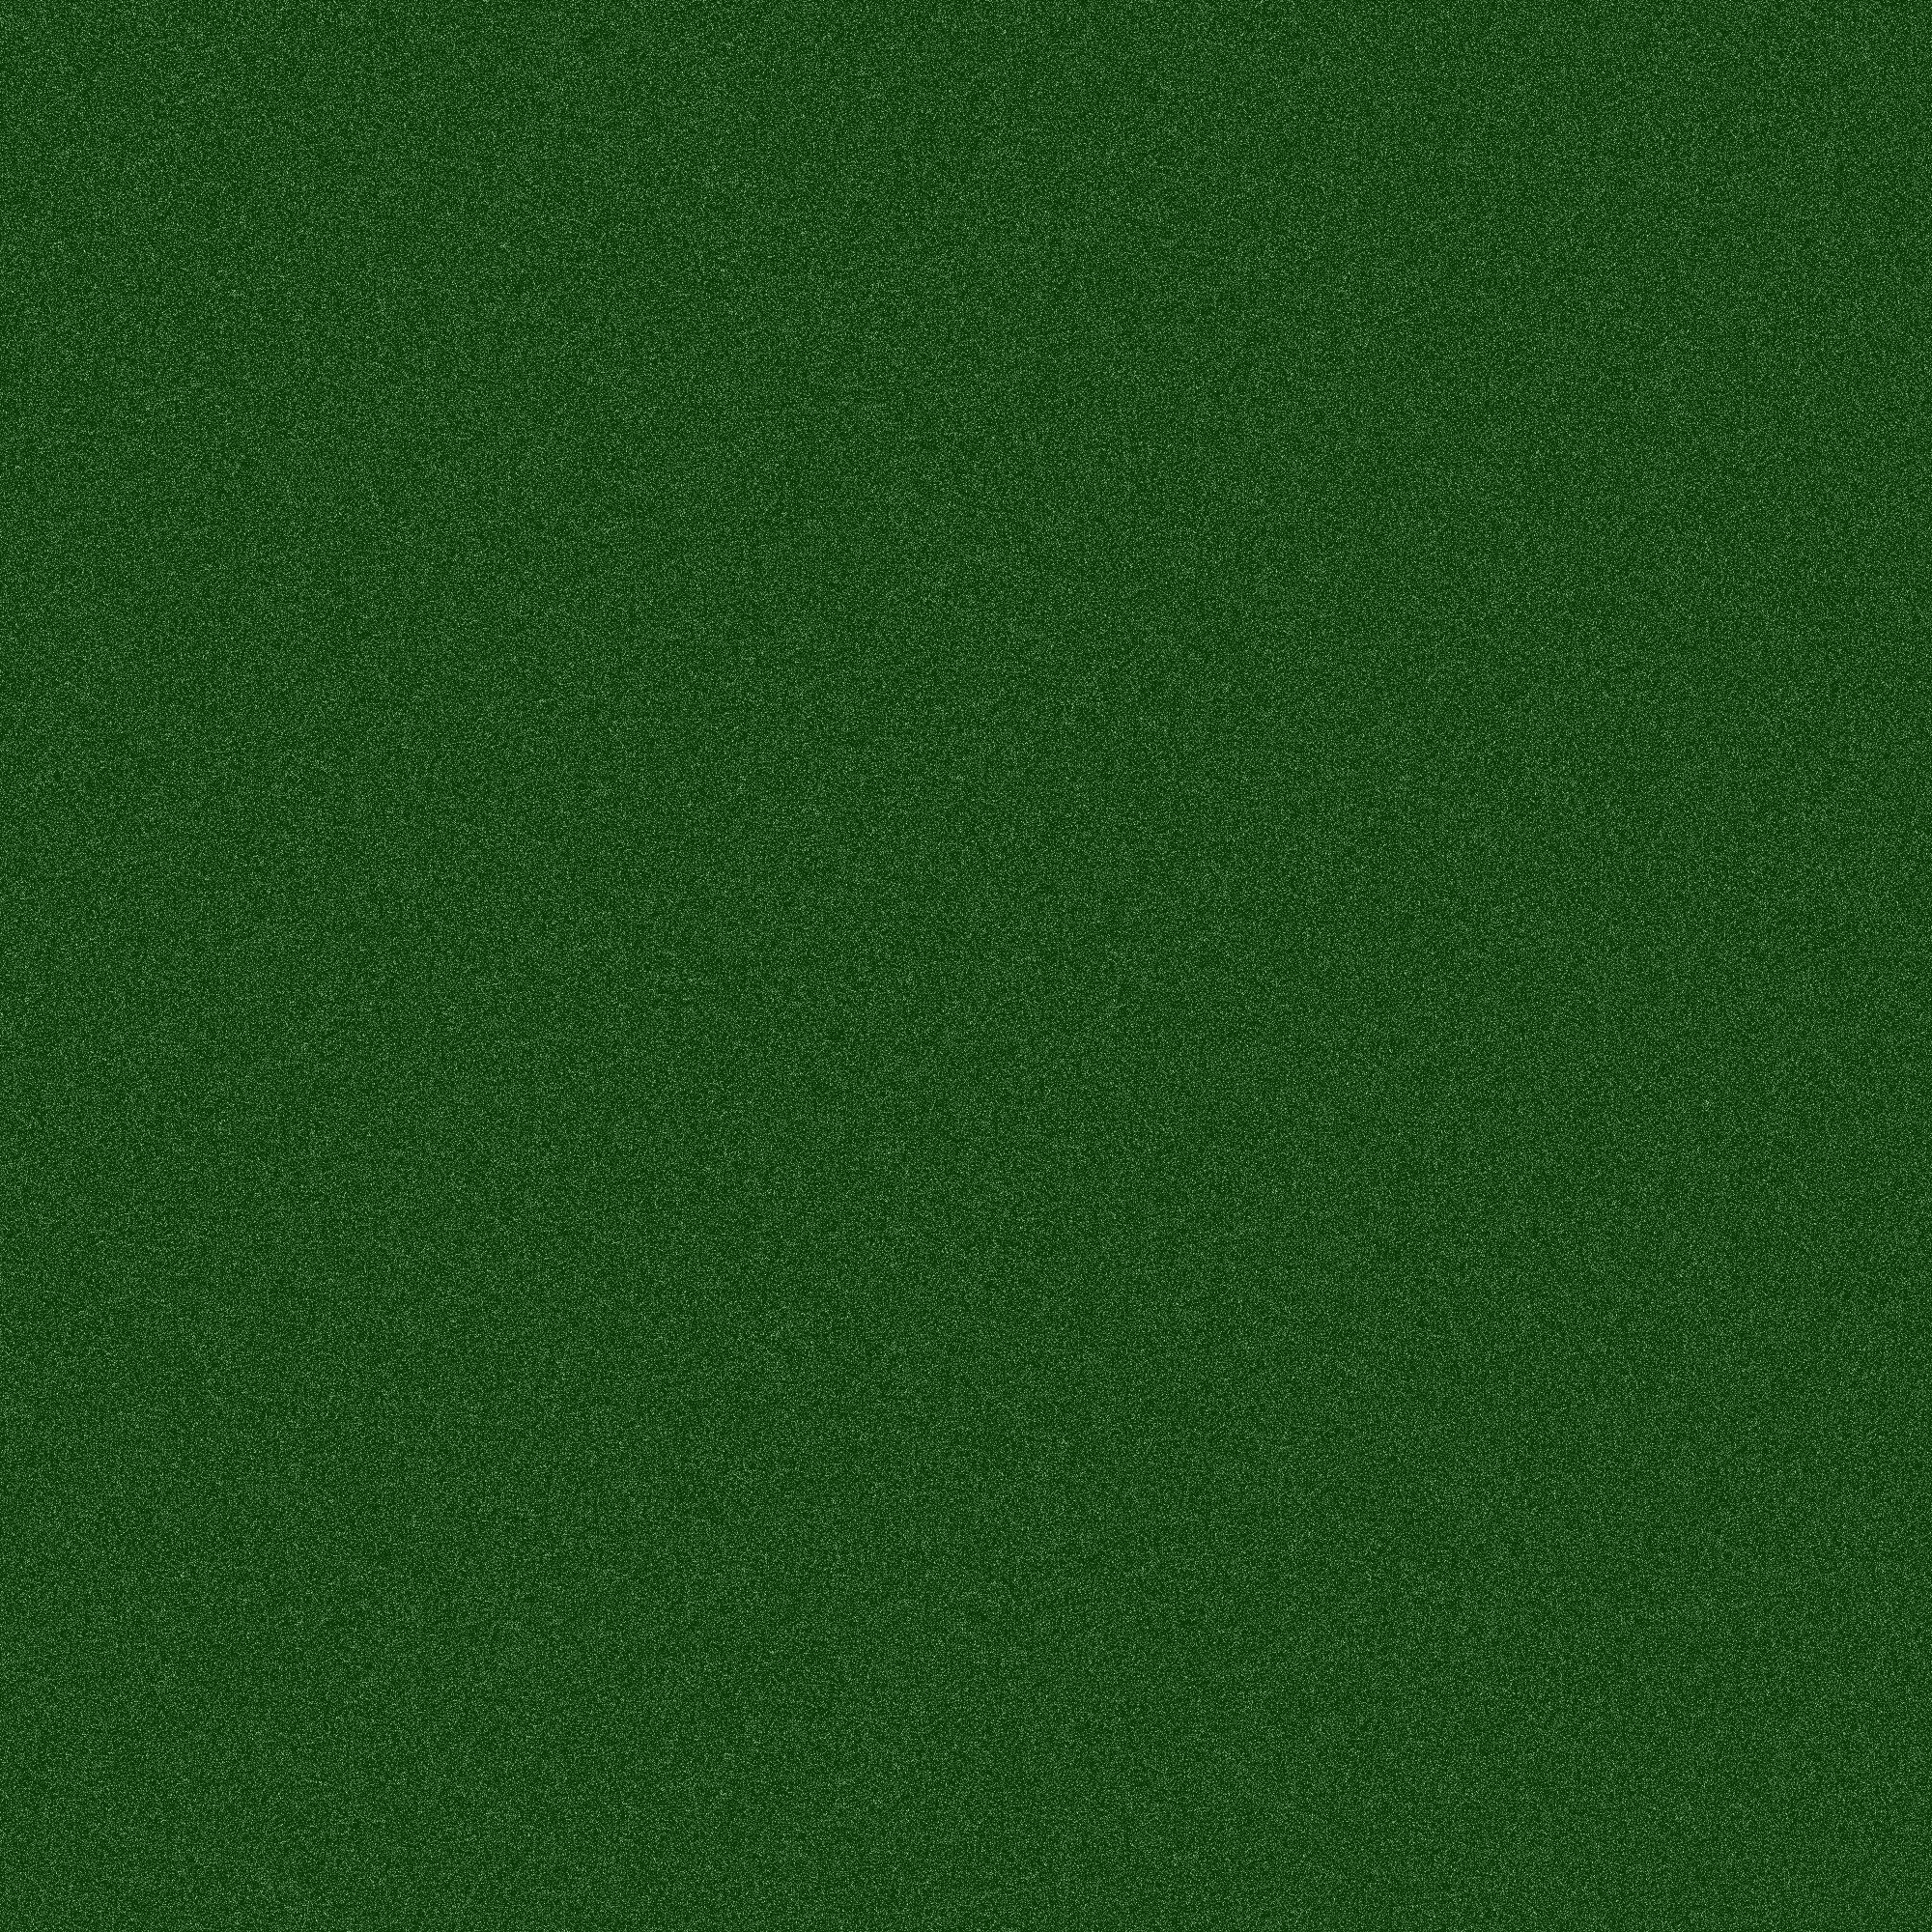 Dark green noise background texture png public domain for Green design